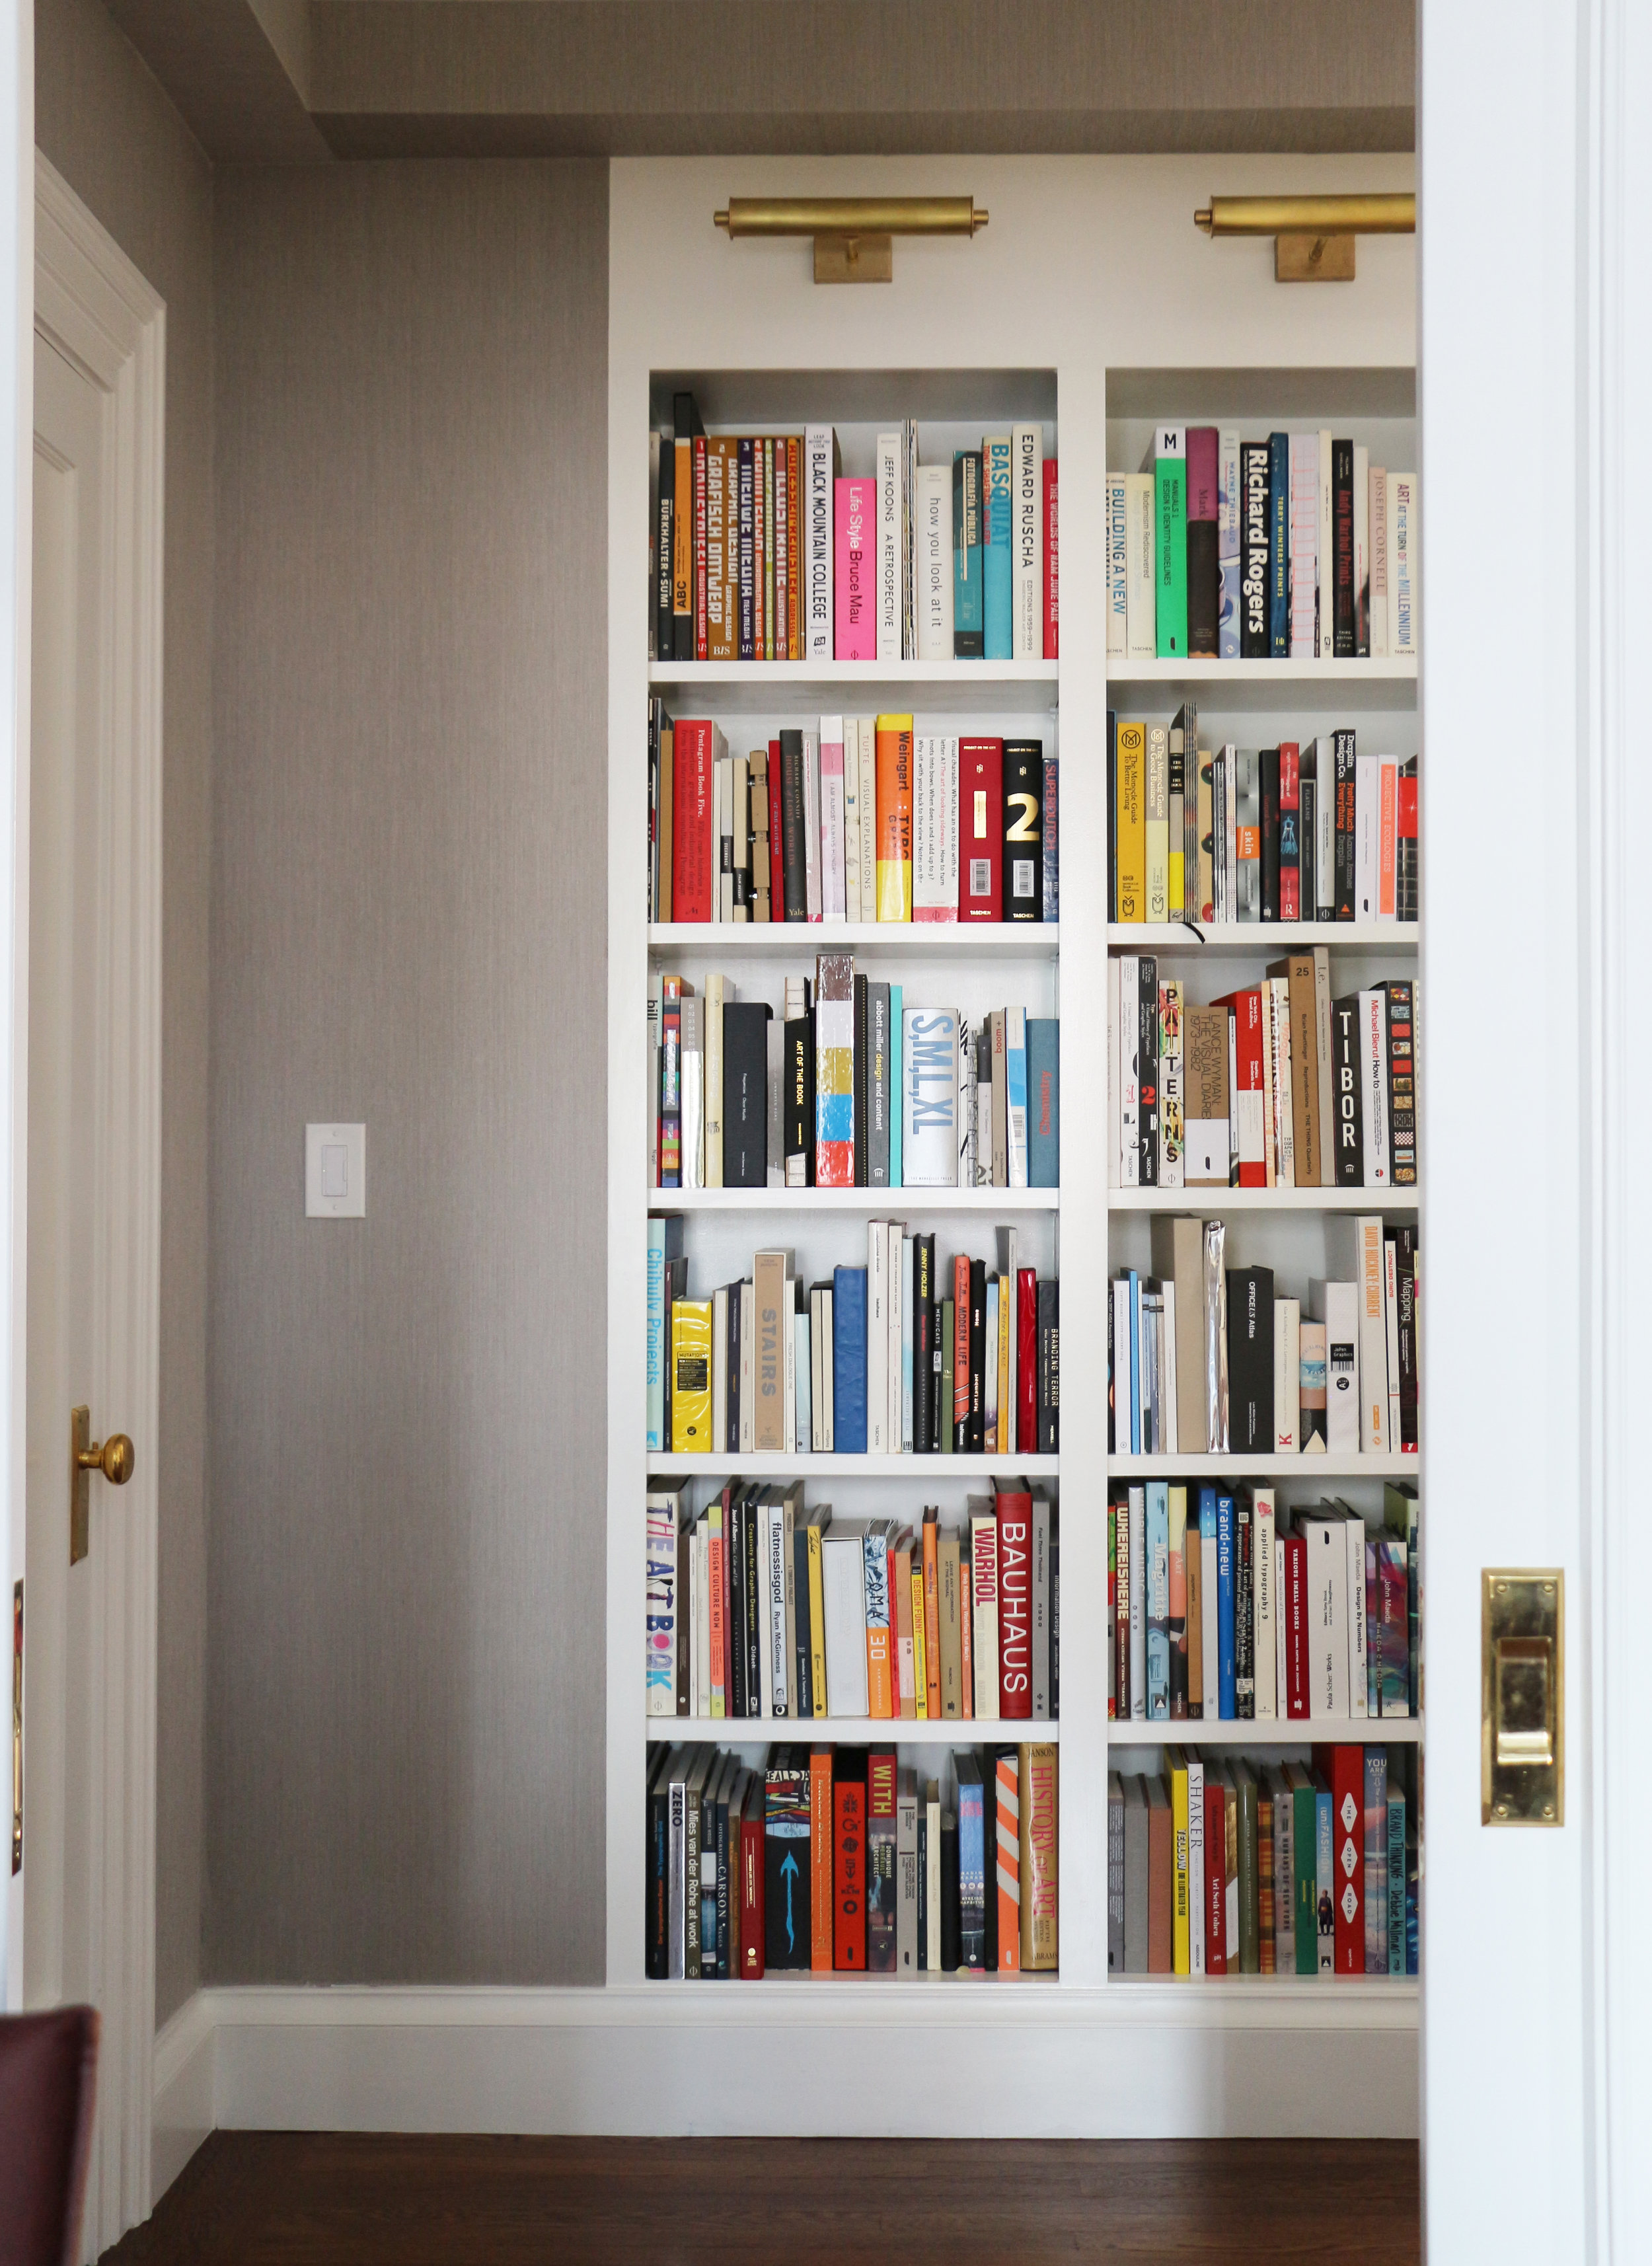 Trenton-Bookshelves-1.jpg